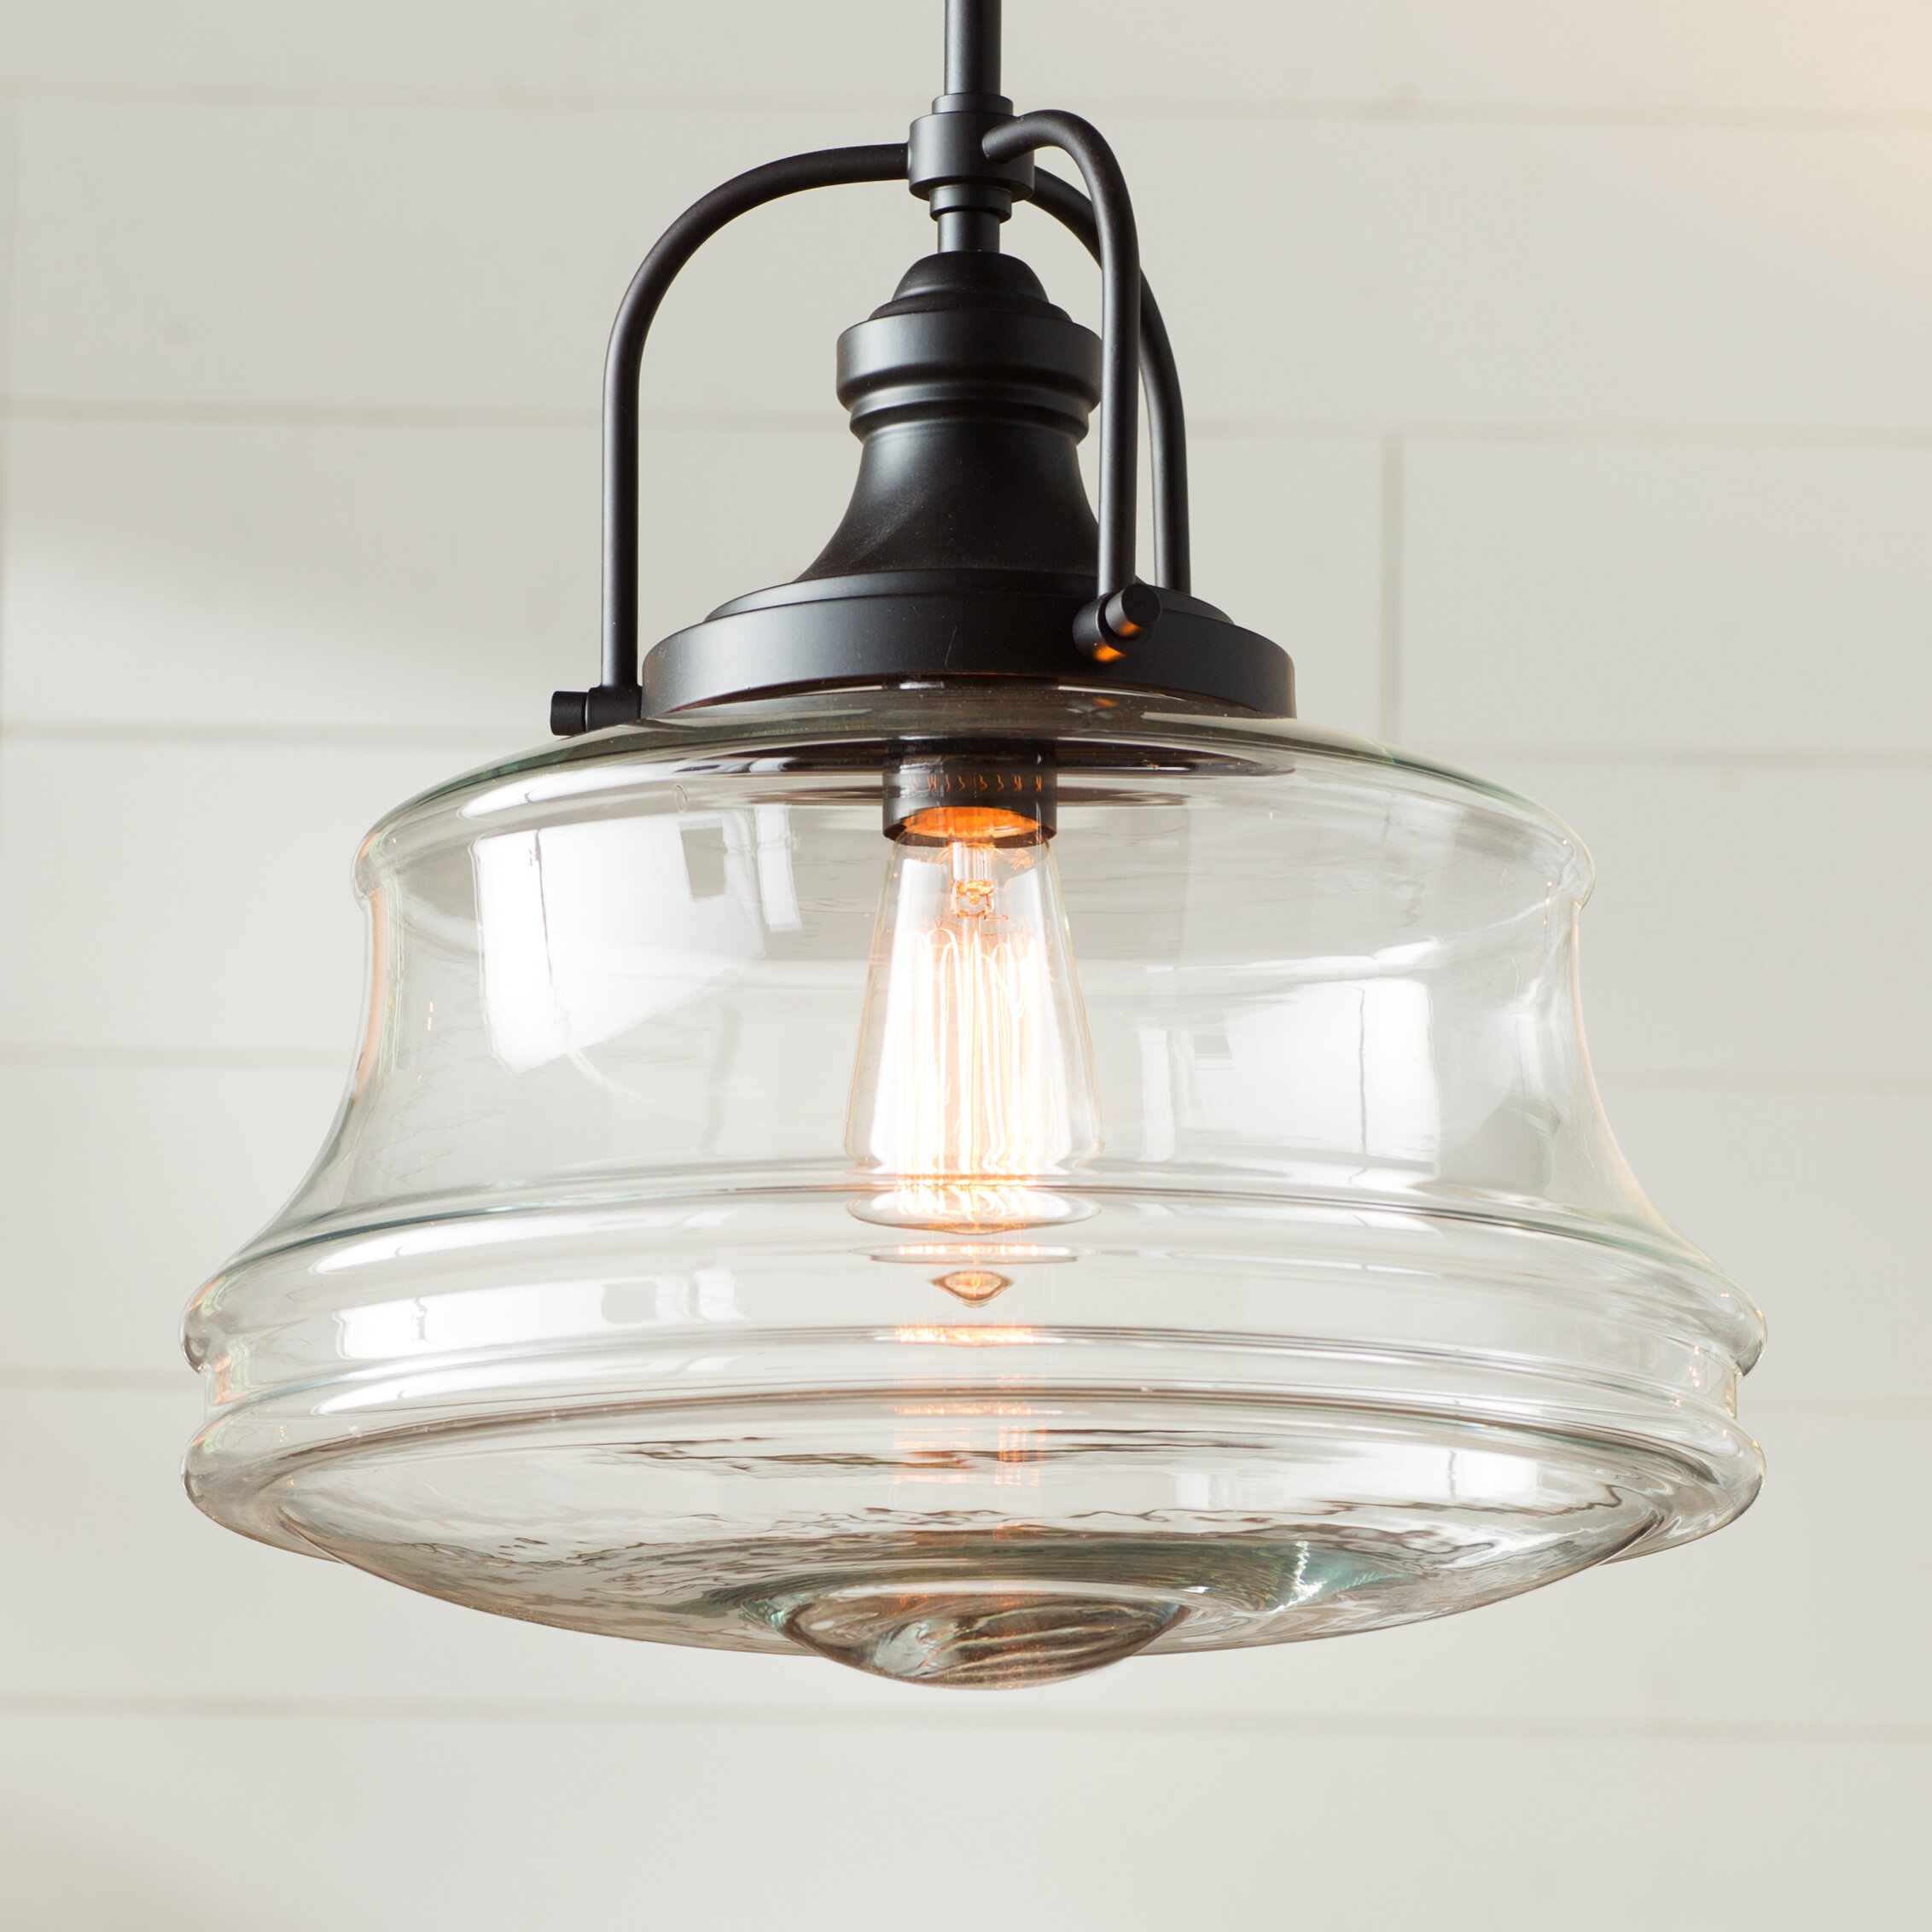 sale art light pendant lights depot lowes schoolhouse for the master home and milk australia remodel mini lighting copper glass